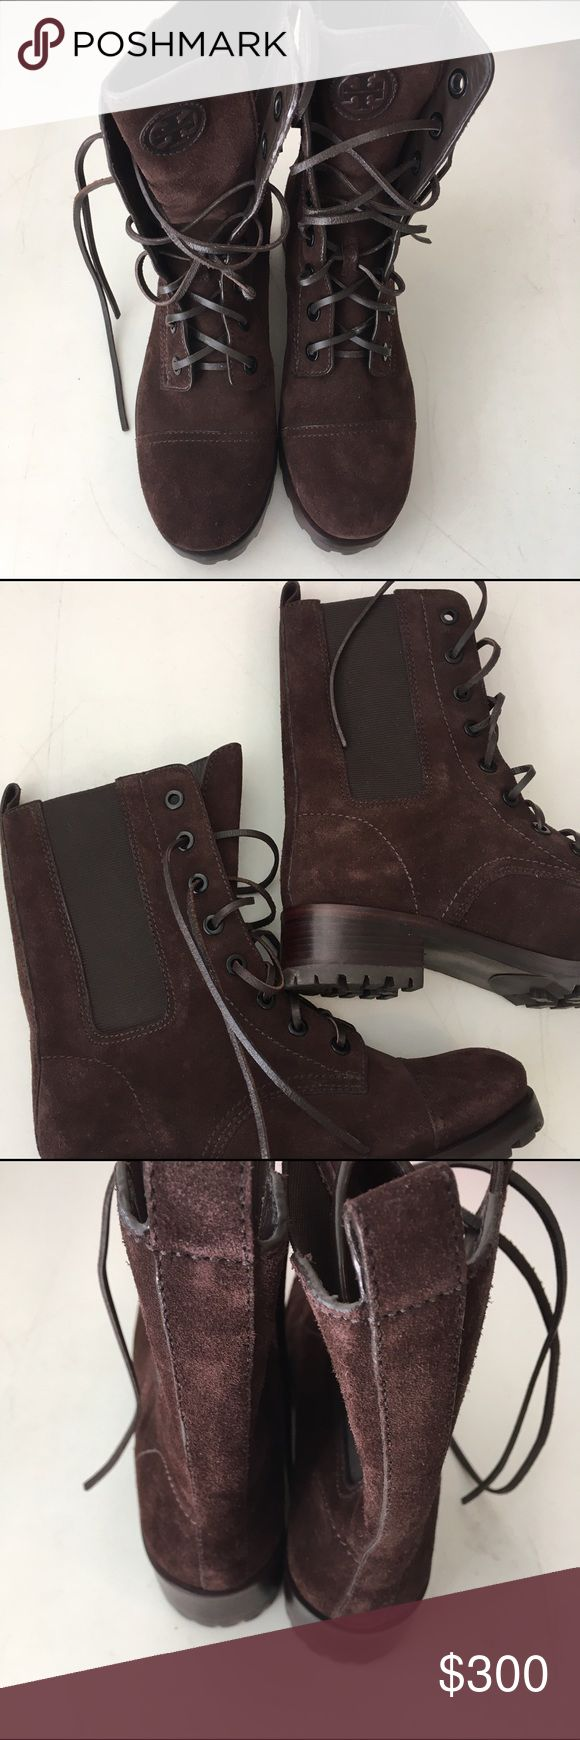 Tory Burch Broome Suede Boots New without box  8 Tory Burch Boots New without box size 8 Tory Burch Shoes Lace Up Boots